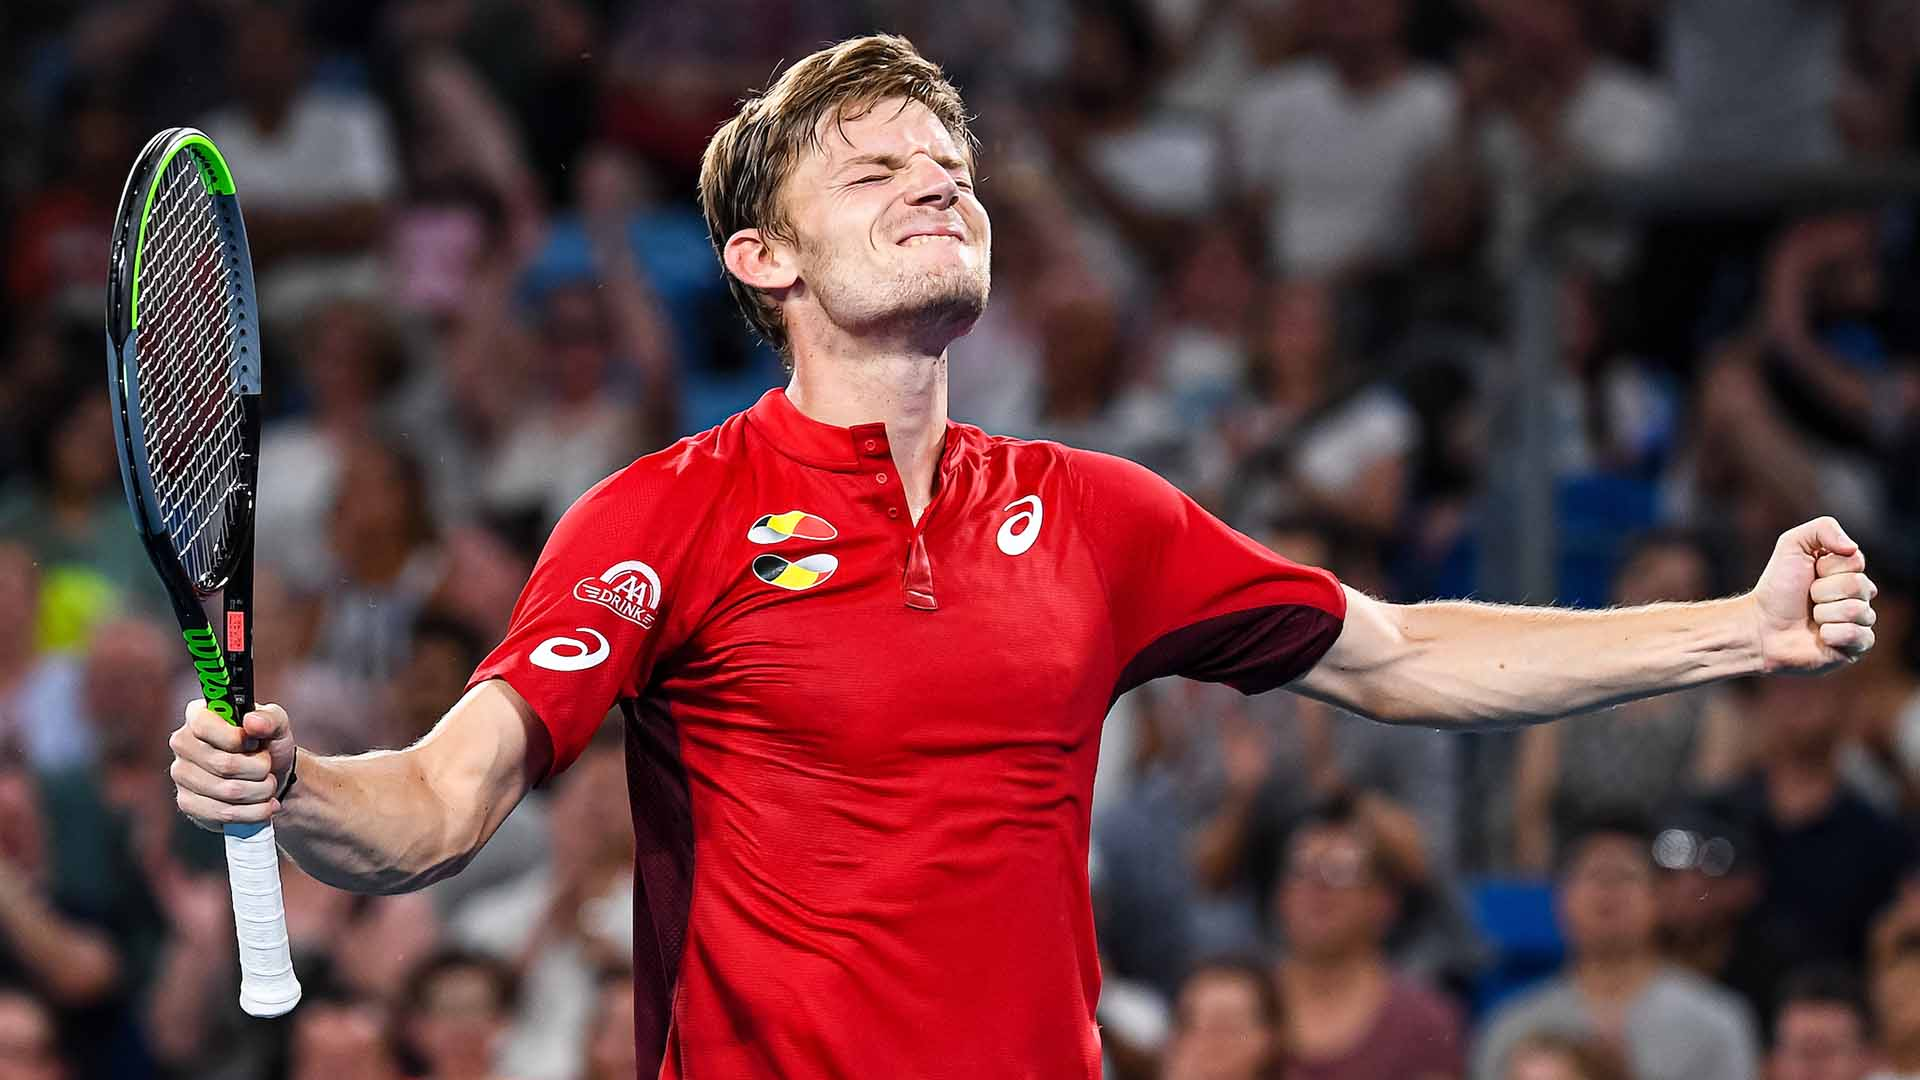 David Goffin records his second ATP Head2Head win in six matches against Rafael Nadal.